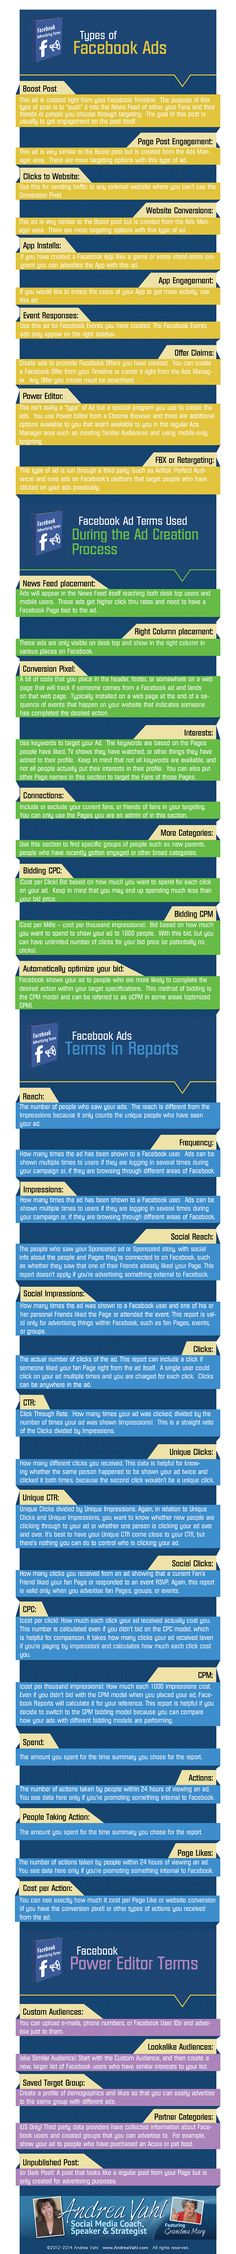 Complete List of Facebook Advertising Terms [Infographic]